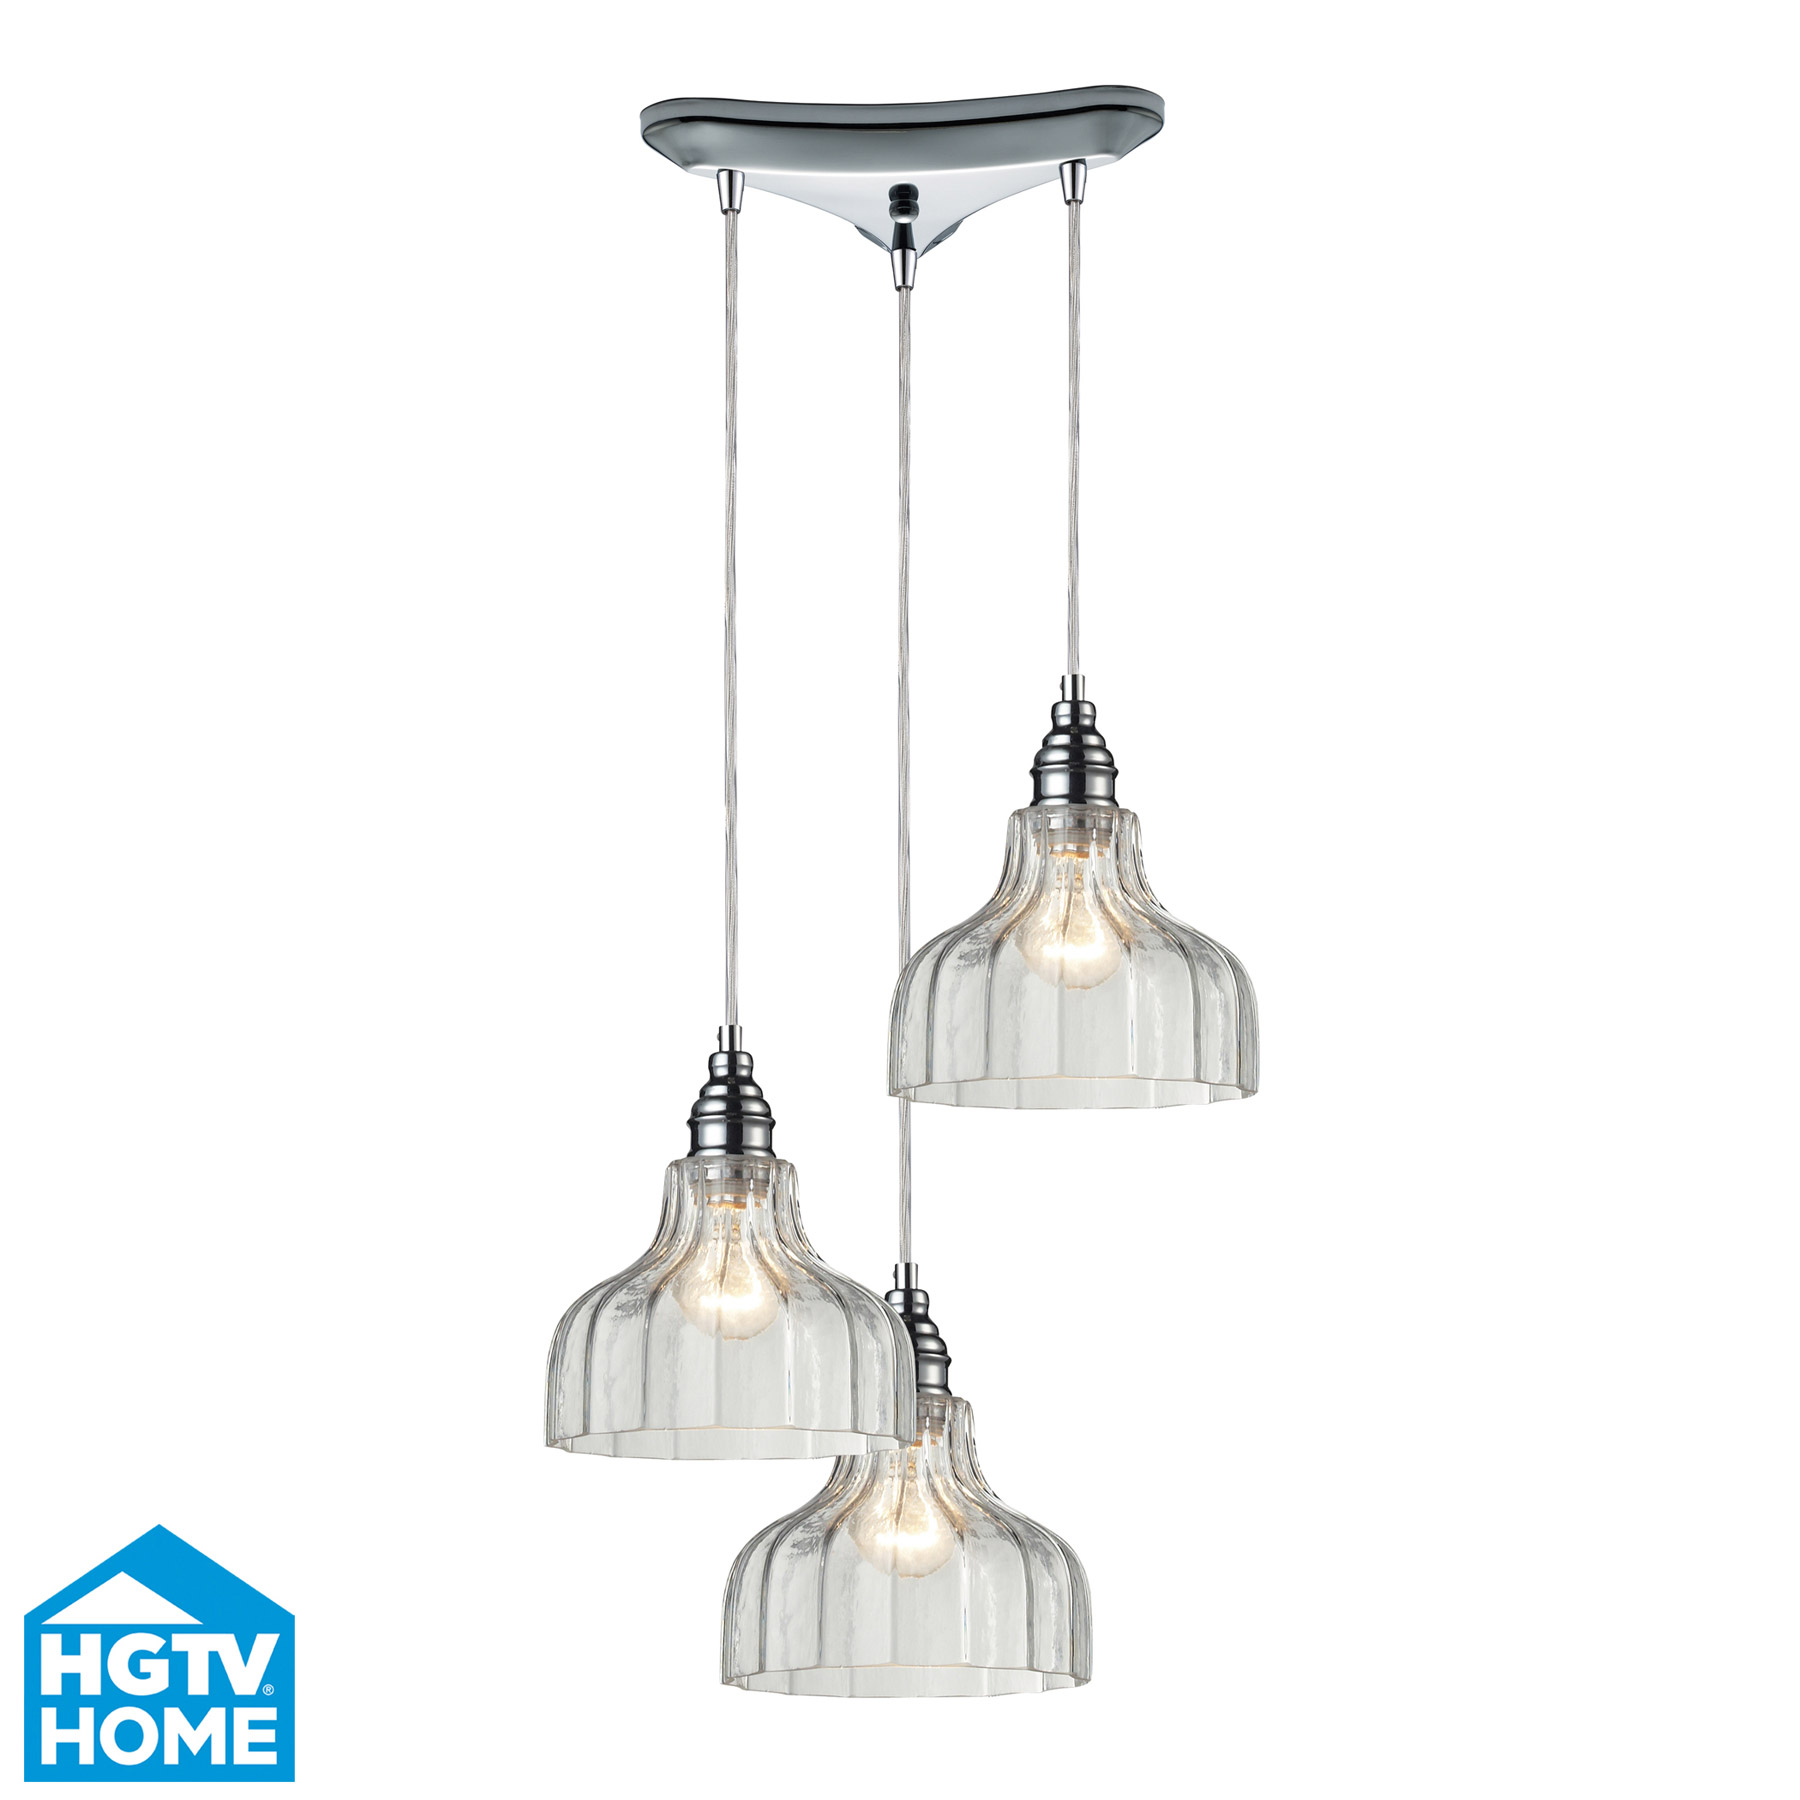 Elk Lighting 46018/3 Danica 3 Light Multi Pendant Ceiling